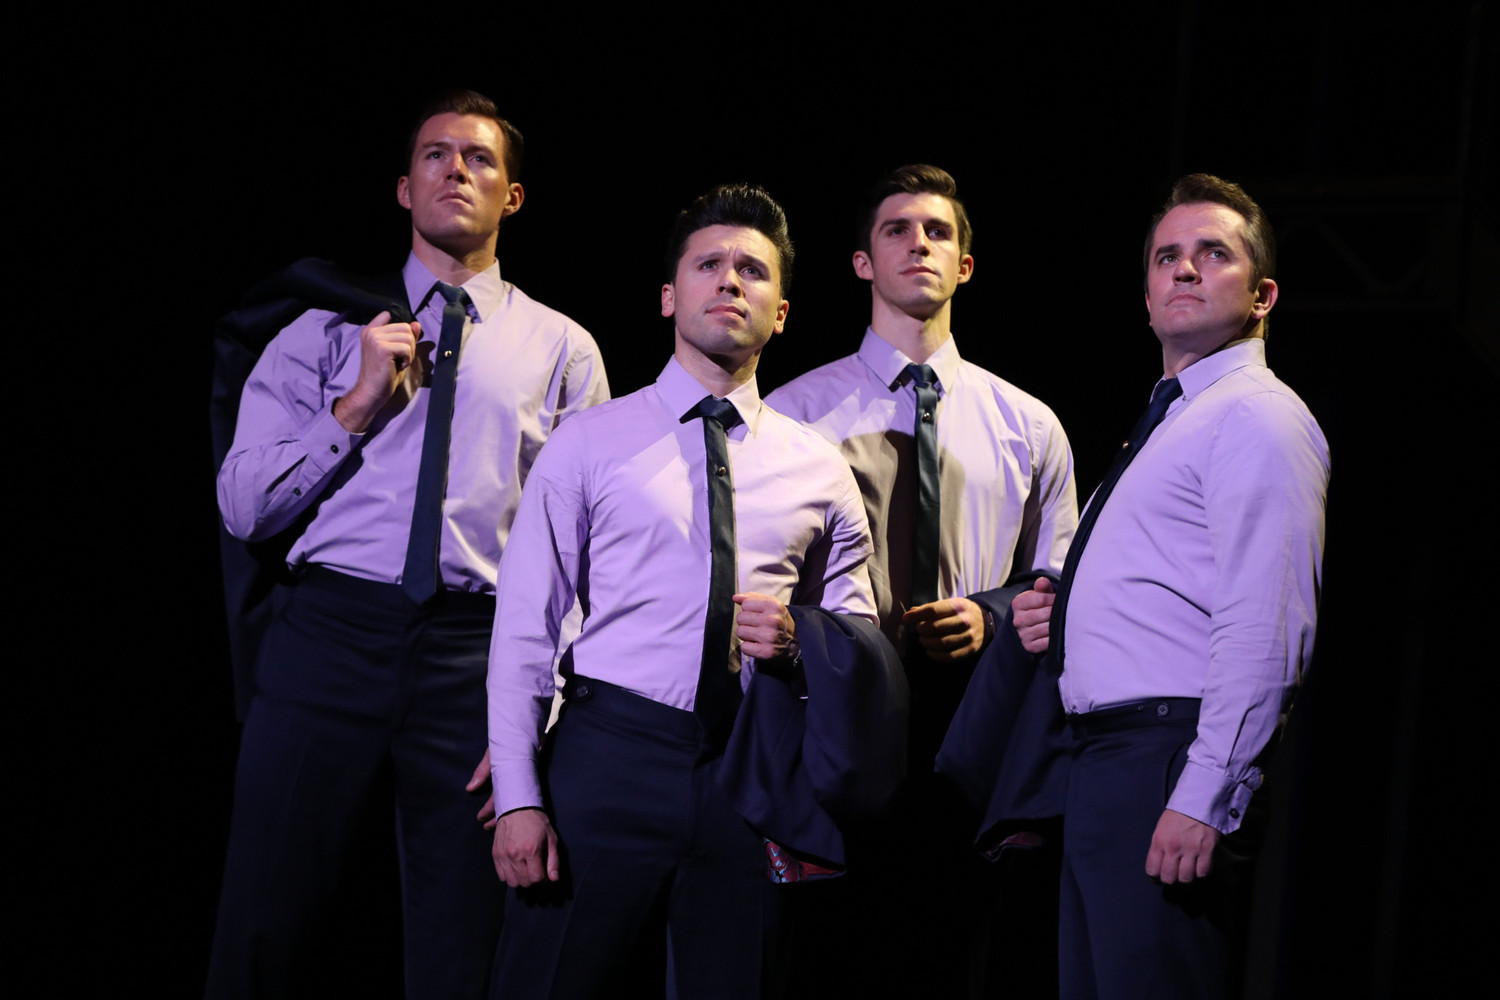 BWW Review: JERSEY BOYS at the Providence Performing Arts Center